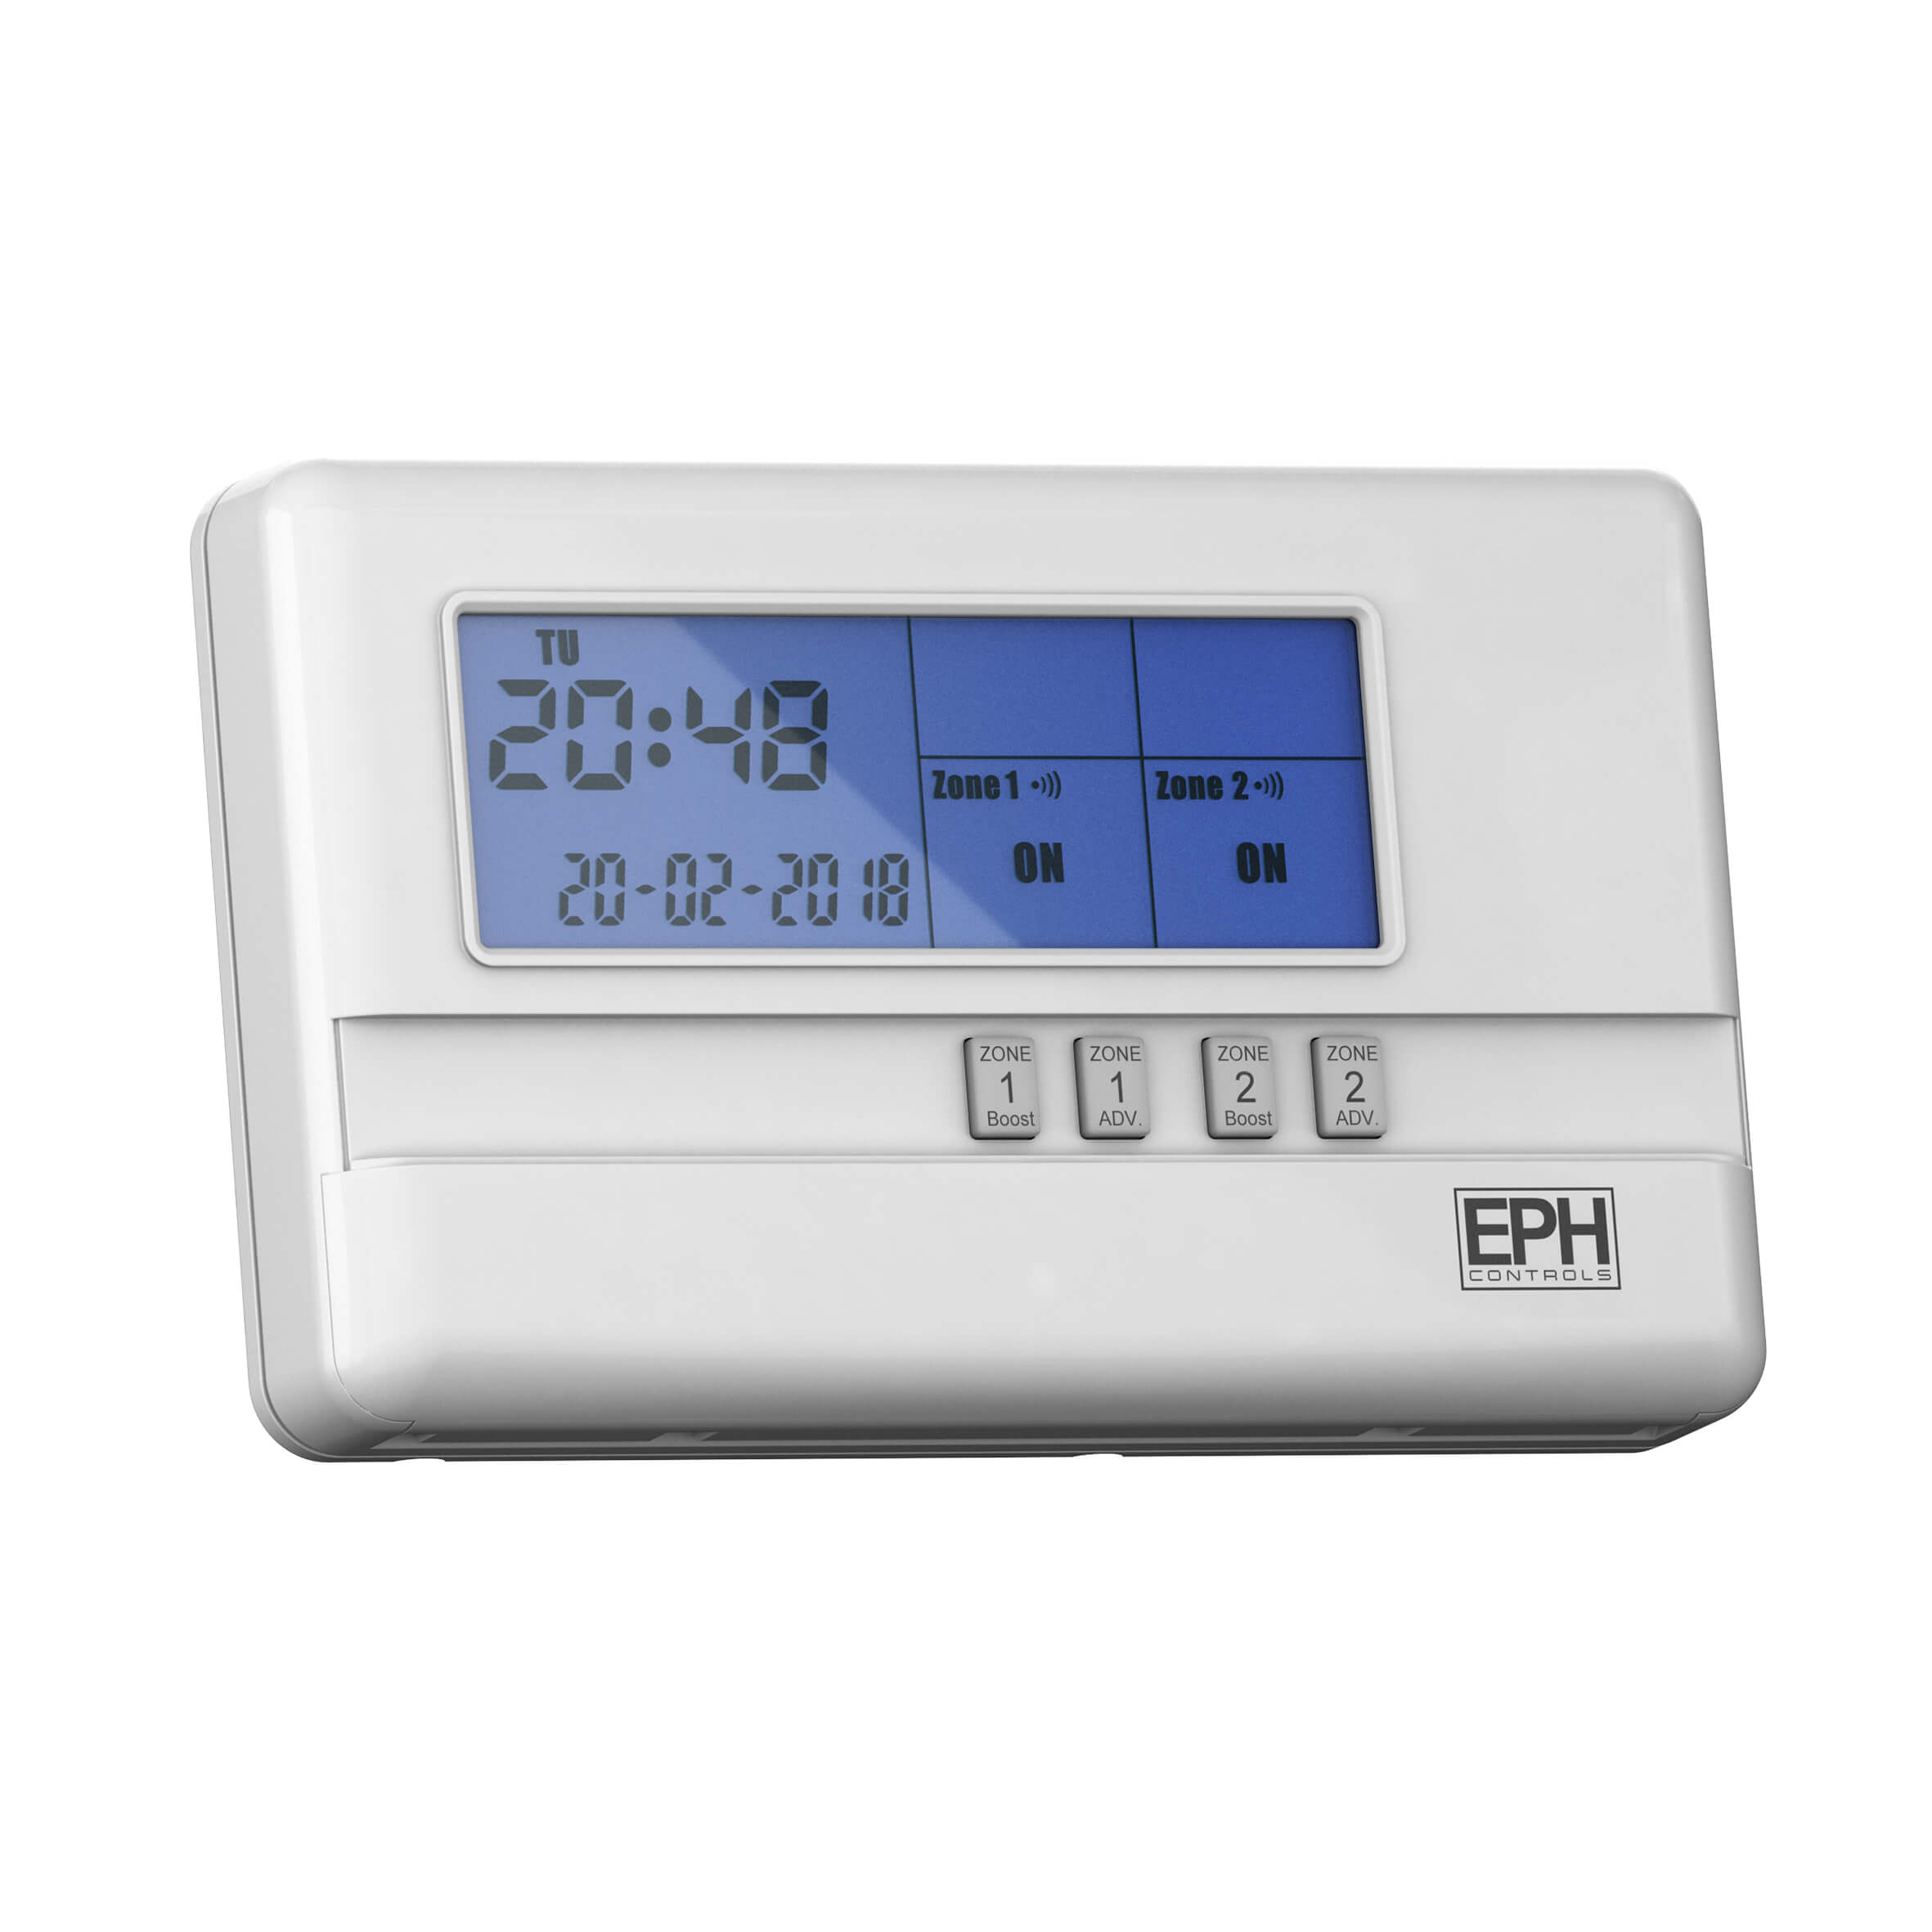 EPH 2 Zone Programmer, 7 Day, 5 / 2 Day or 24 Hour (c/w volt free contacts)